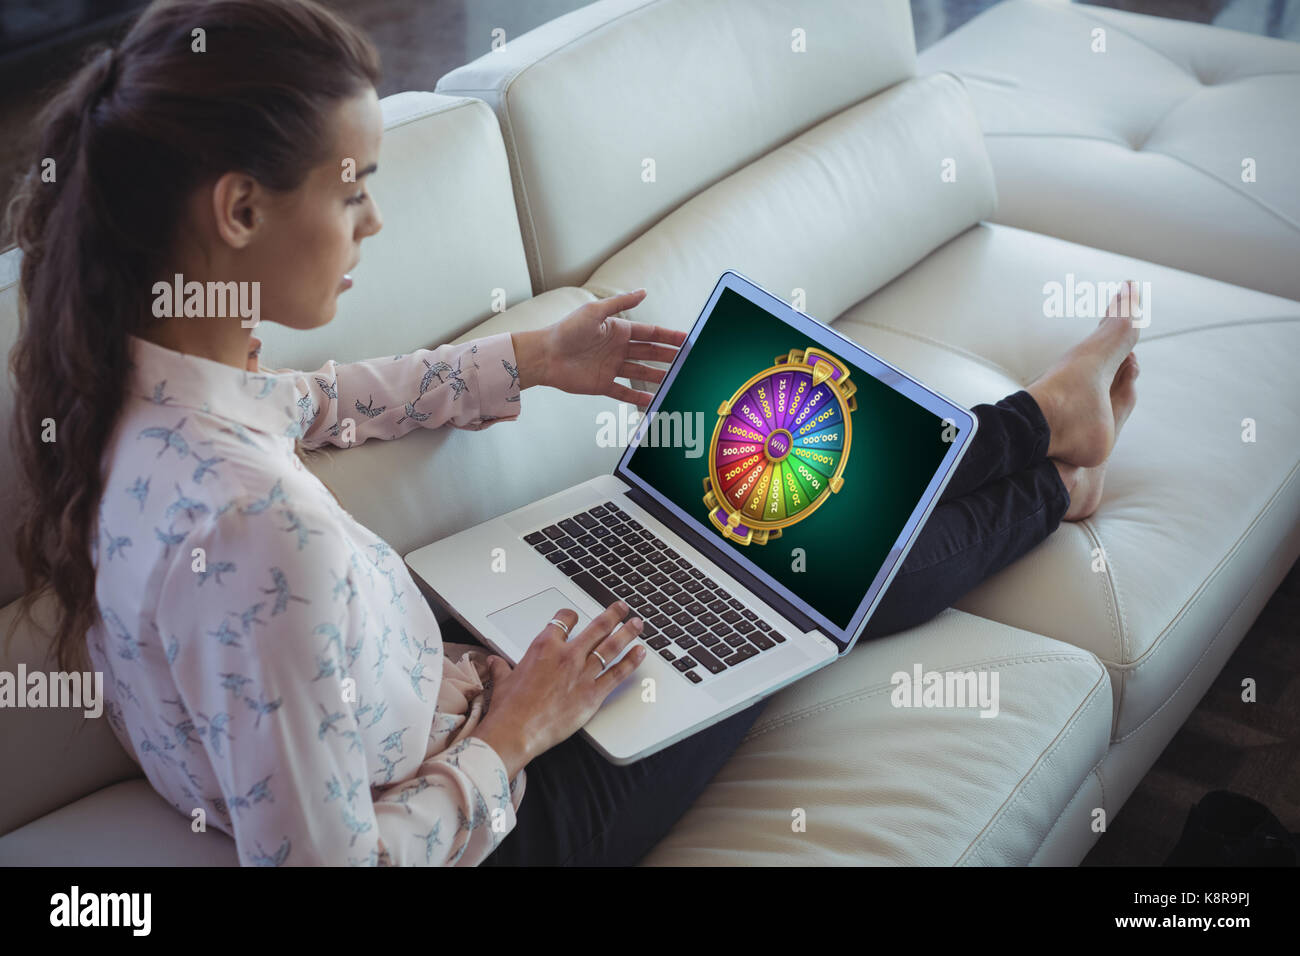 Graphic image of wheel of fortune on mobile screen against businesswoman using laptop while resting on sofa - Stock Image